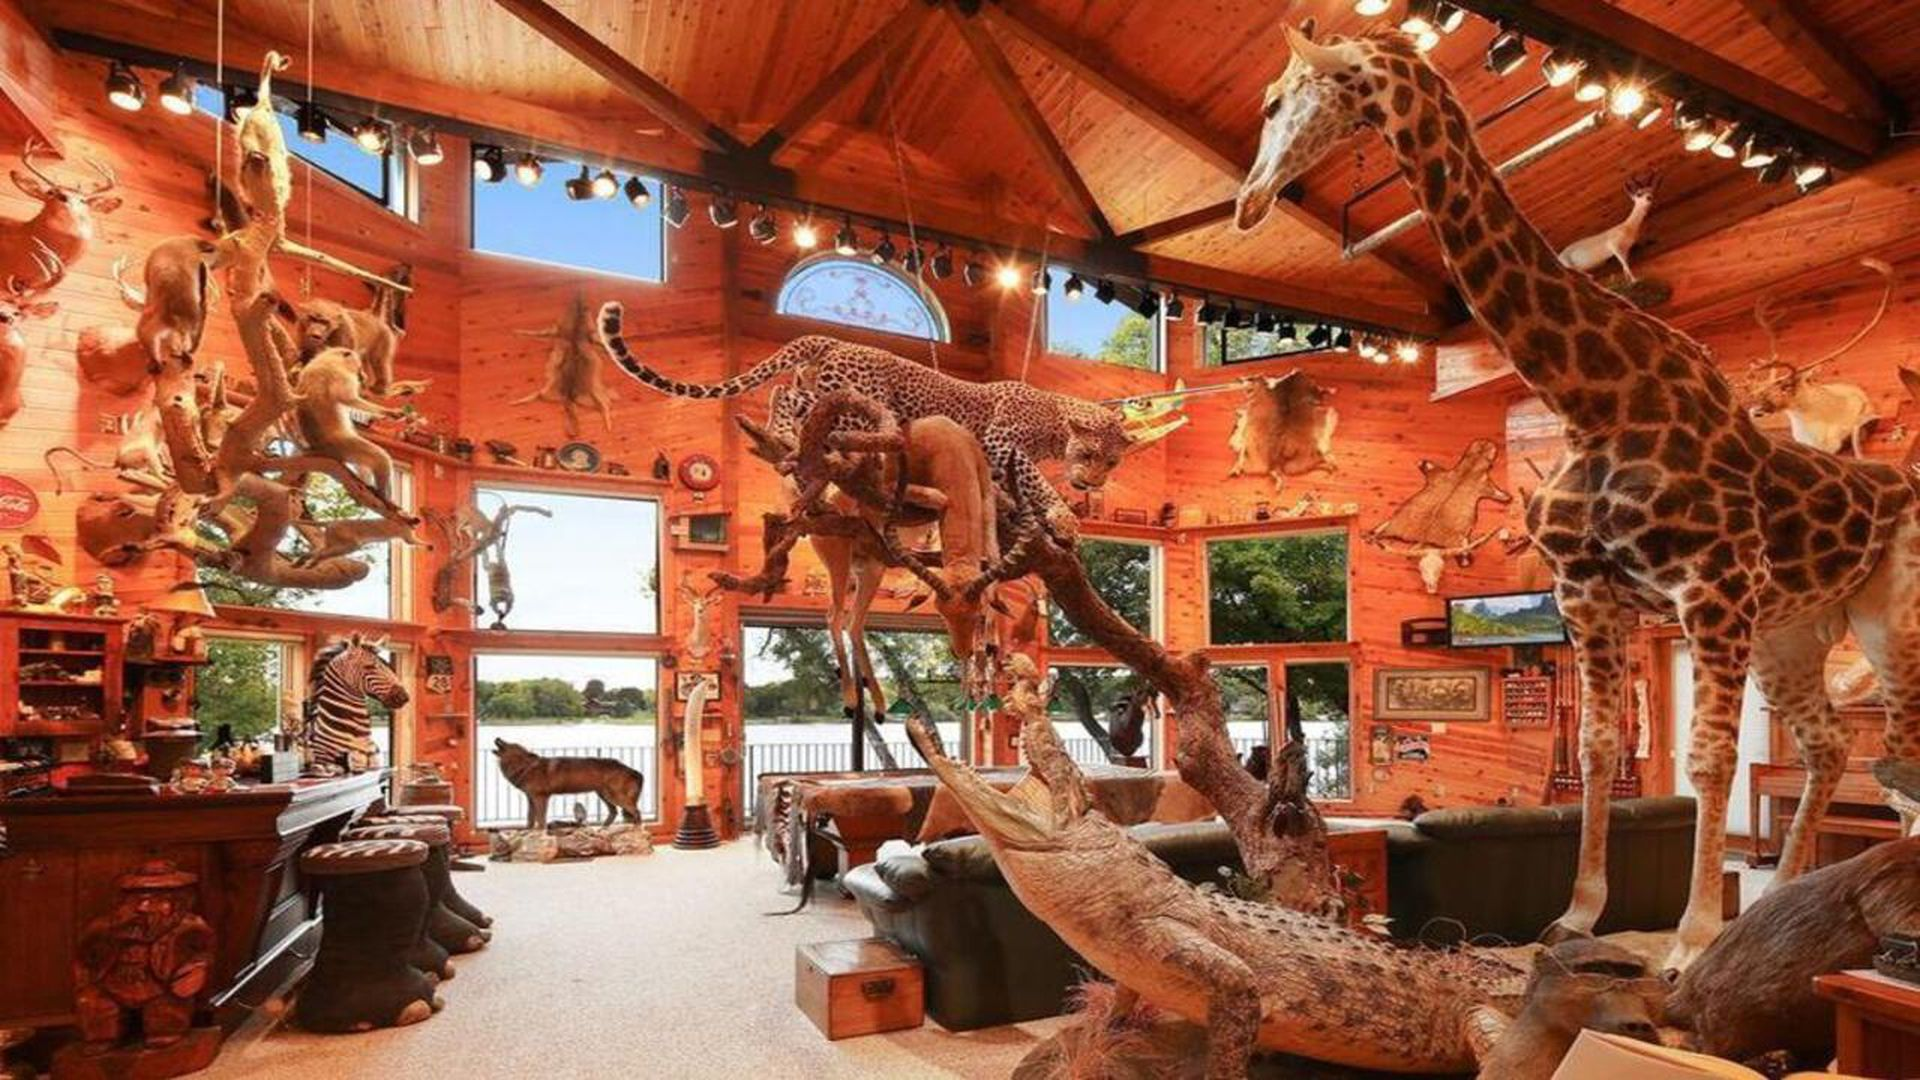 inside of zillow home filled with animals